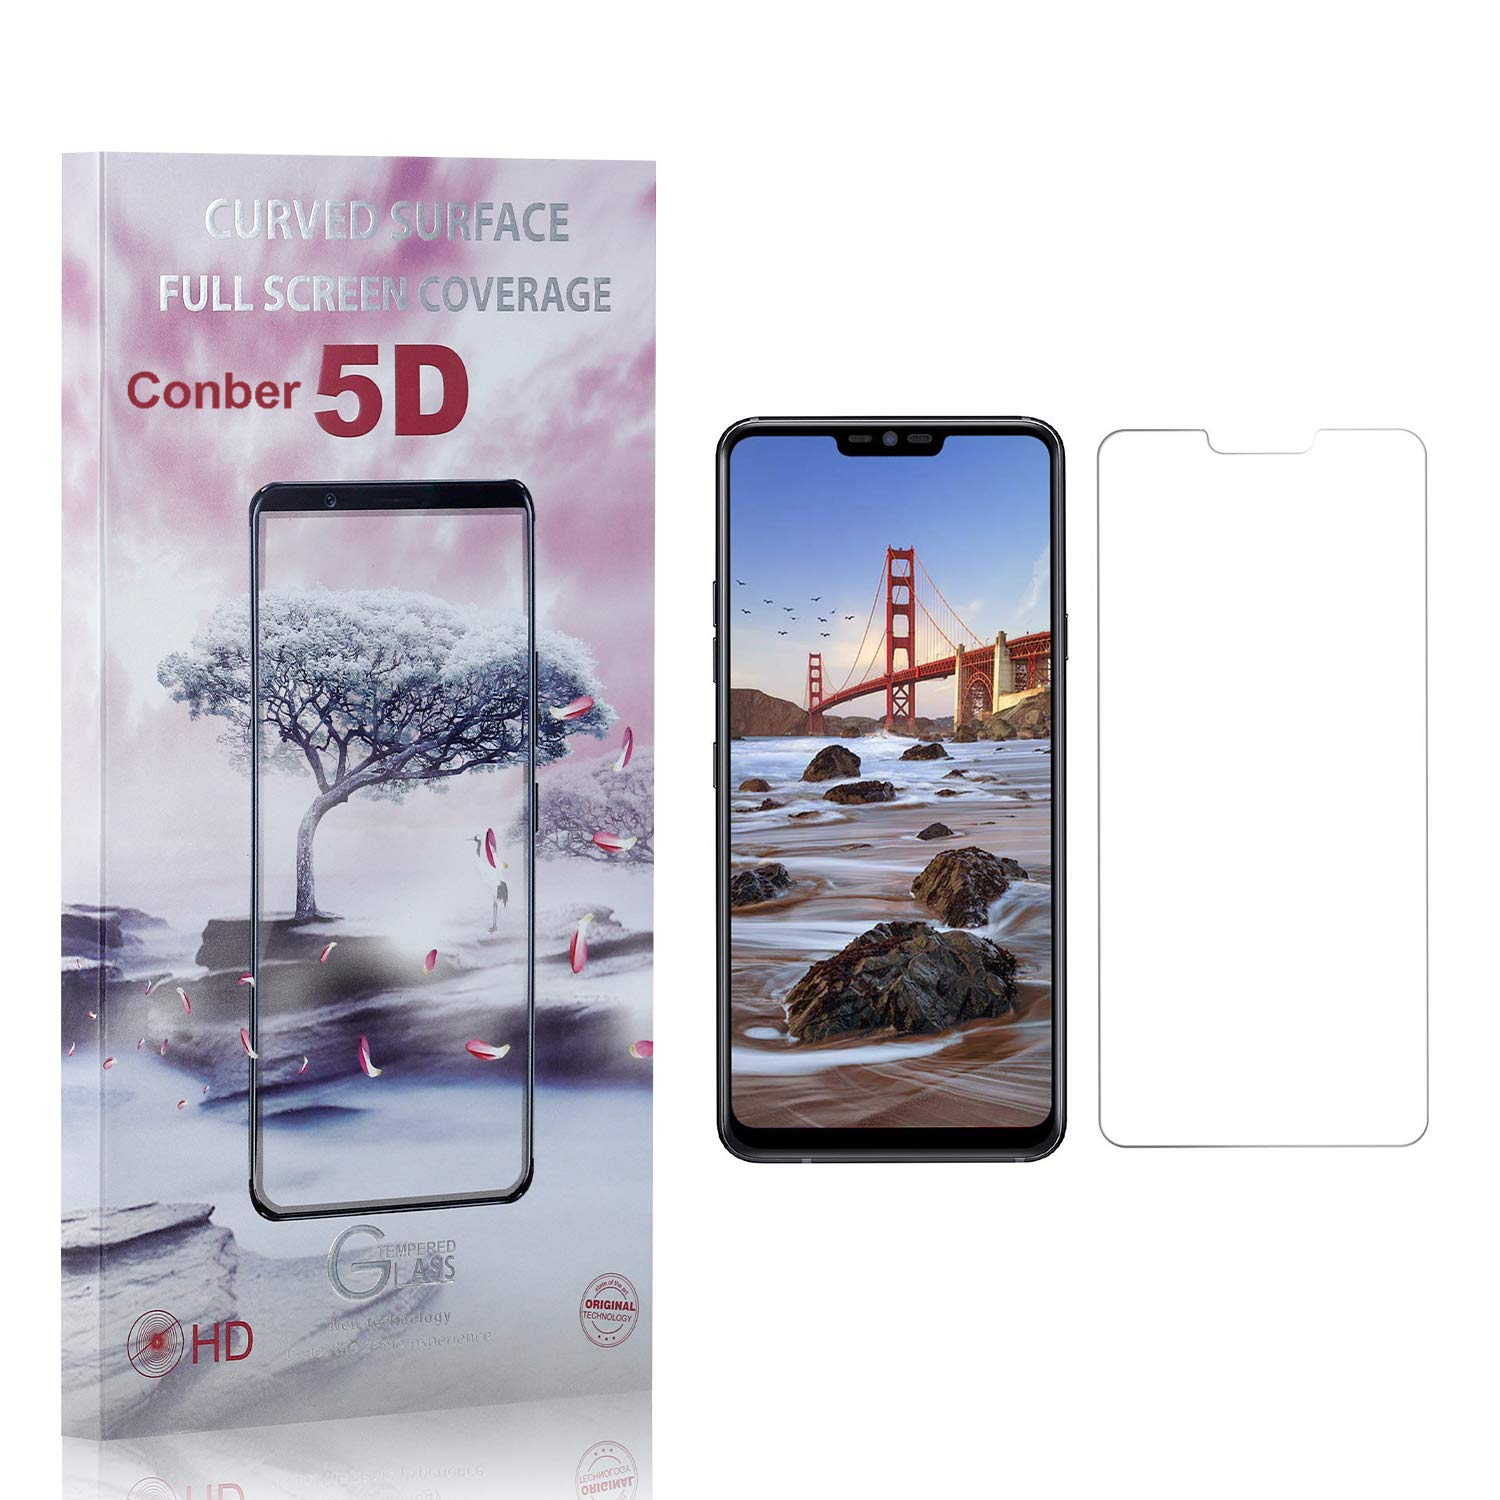 Anti-Shatter Scratch-Resistant Screen Protector for LG G7 ThinQ, Conber 4 Pack Case Friendly Premium Tempered Glass Screen Protector for LG G7 ThinQ